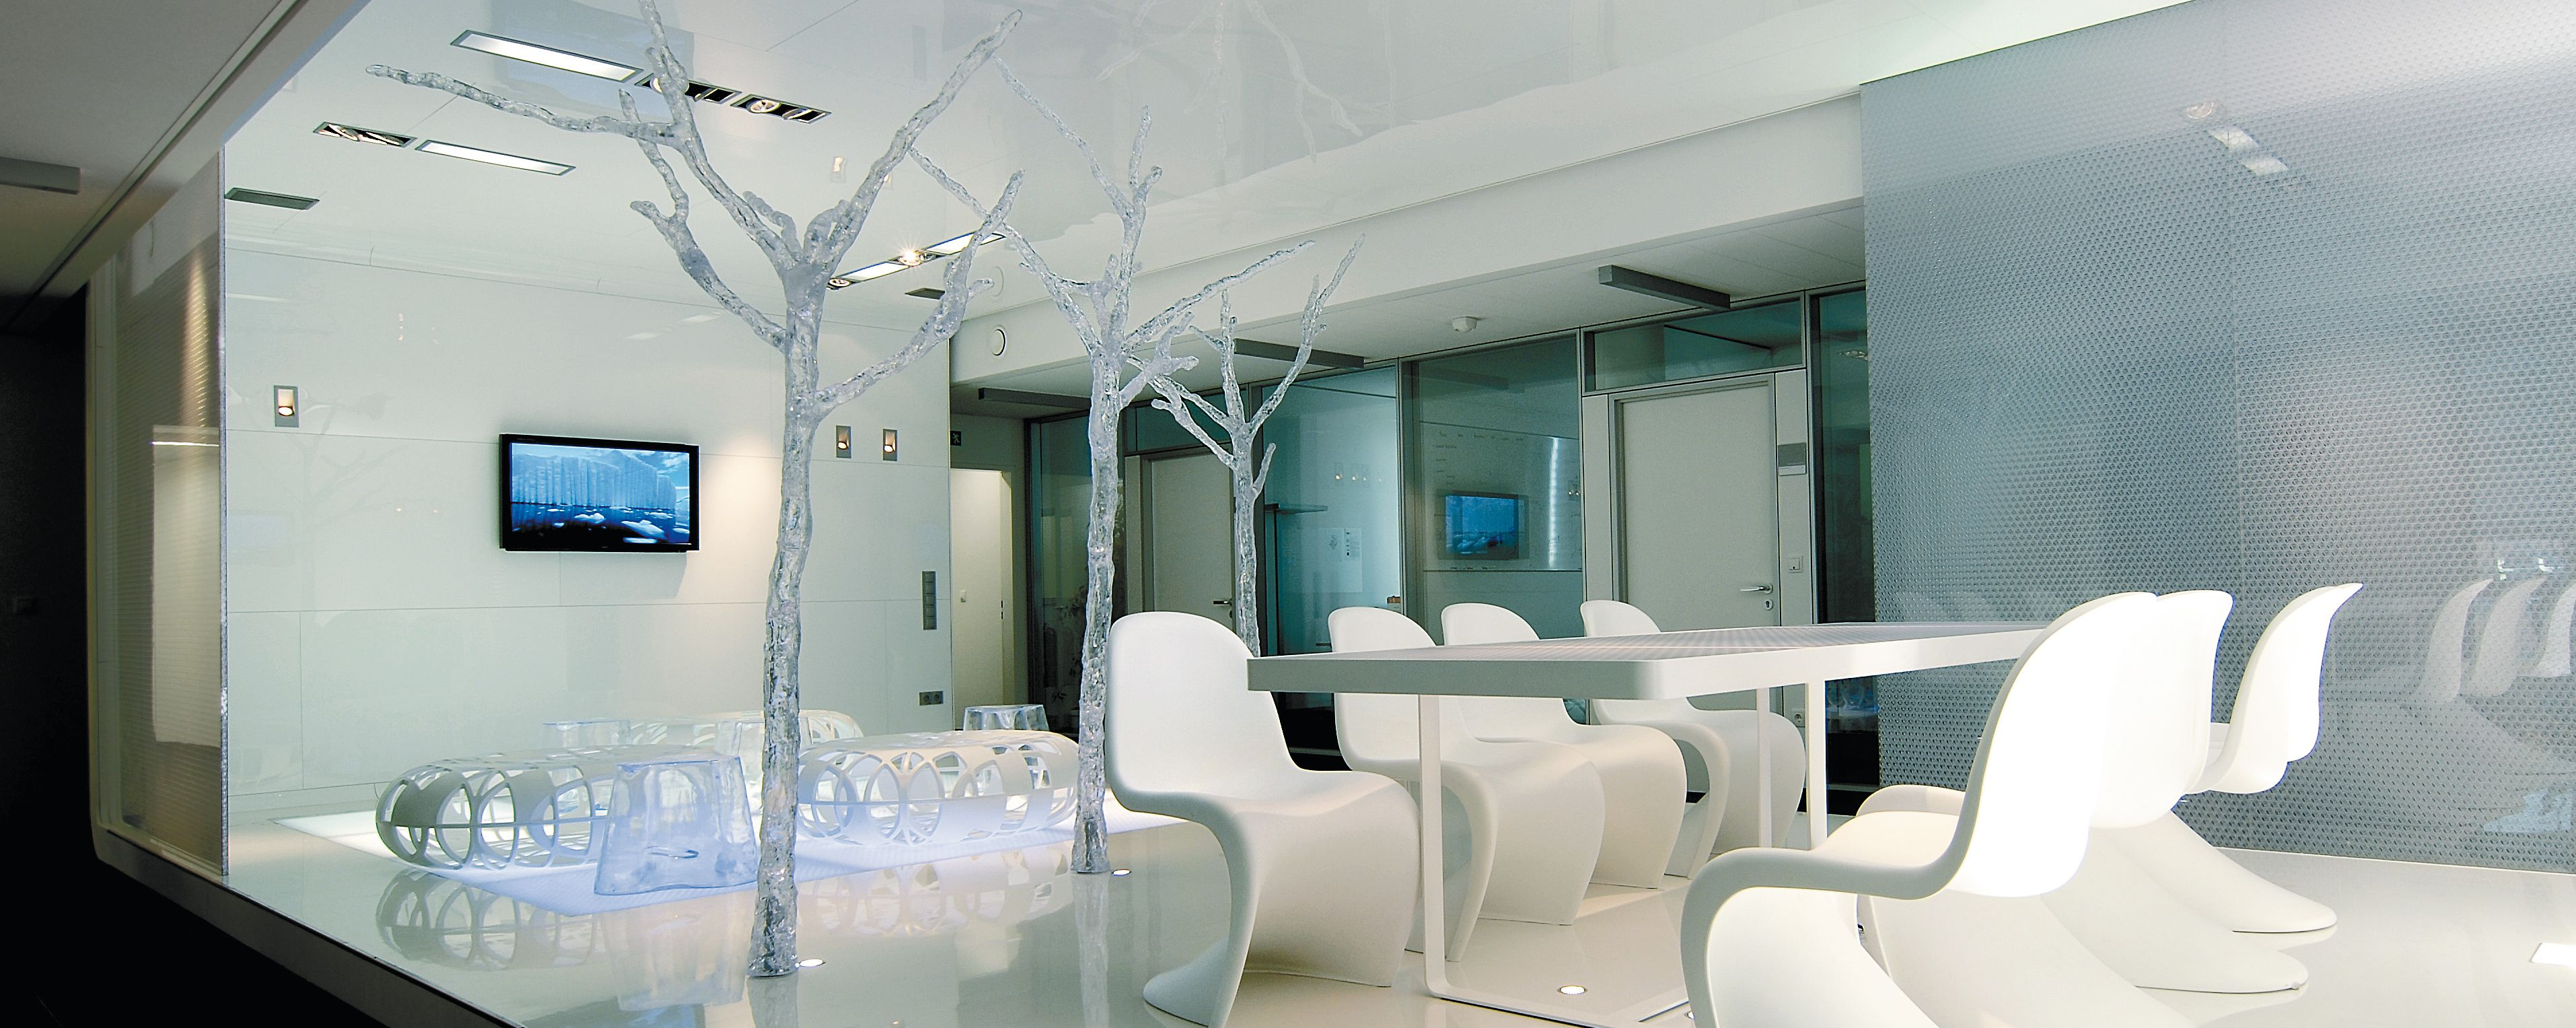 Displays/Monitore